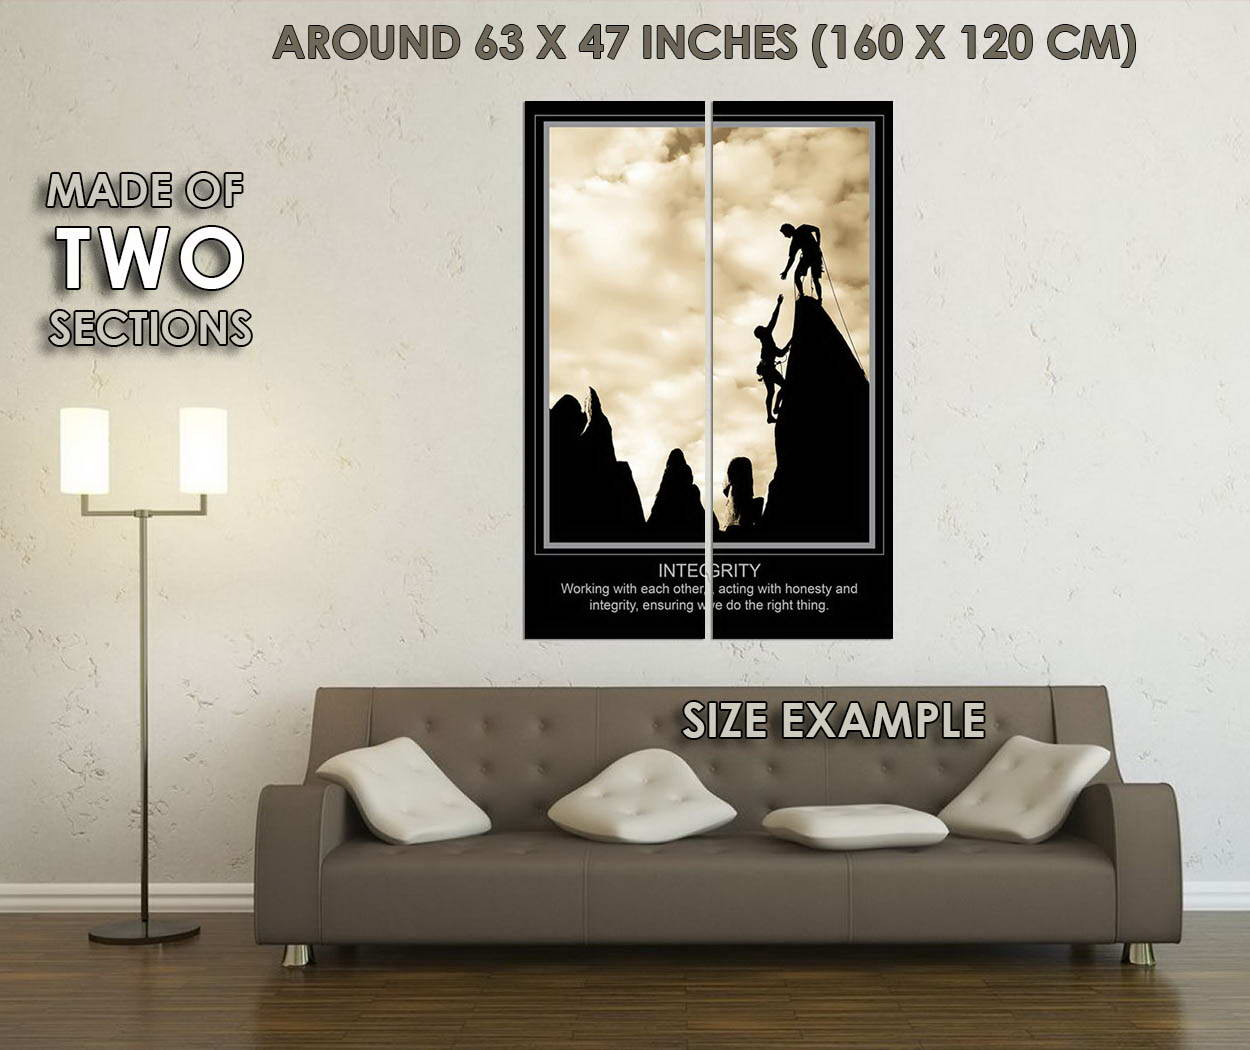 10636-INTEGRITY-Motivational-Quote-Mountain-Climber-LAMINATED-POSTER-CA thumbnail 6